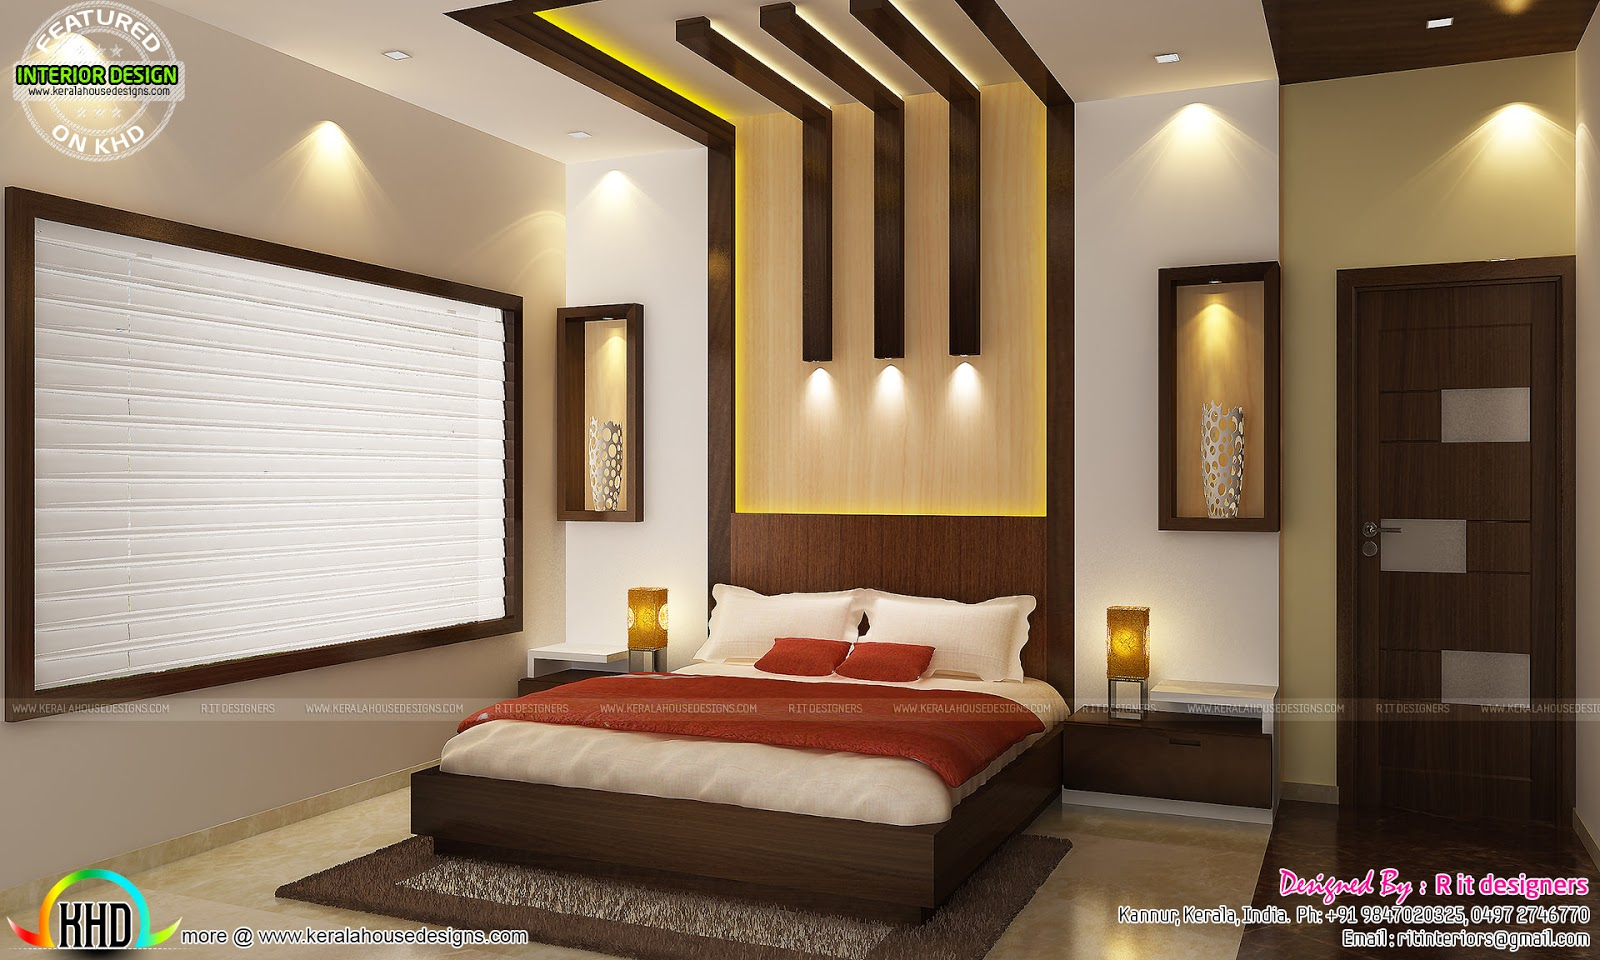 Kitchen living bedroom dining interior decor kerala for Home design bedroom ideas